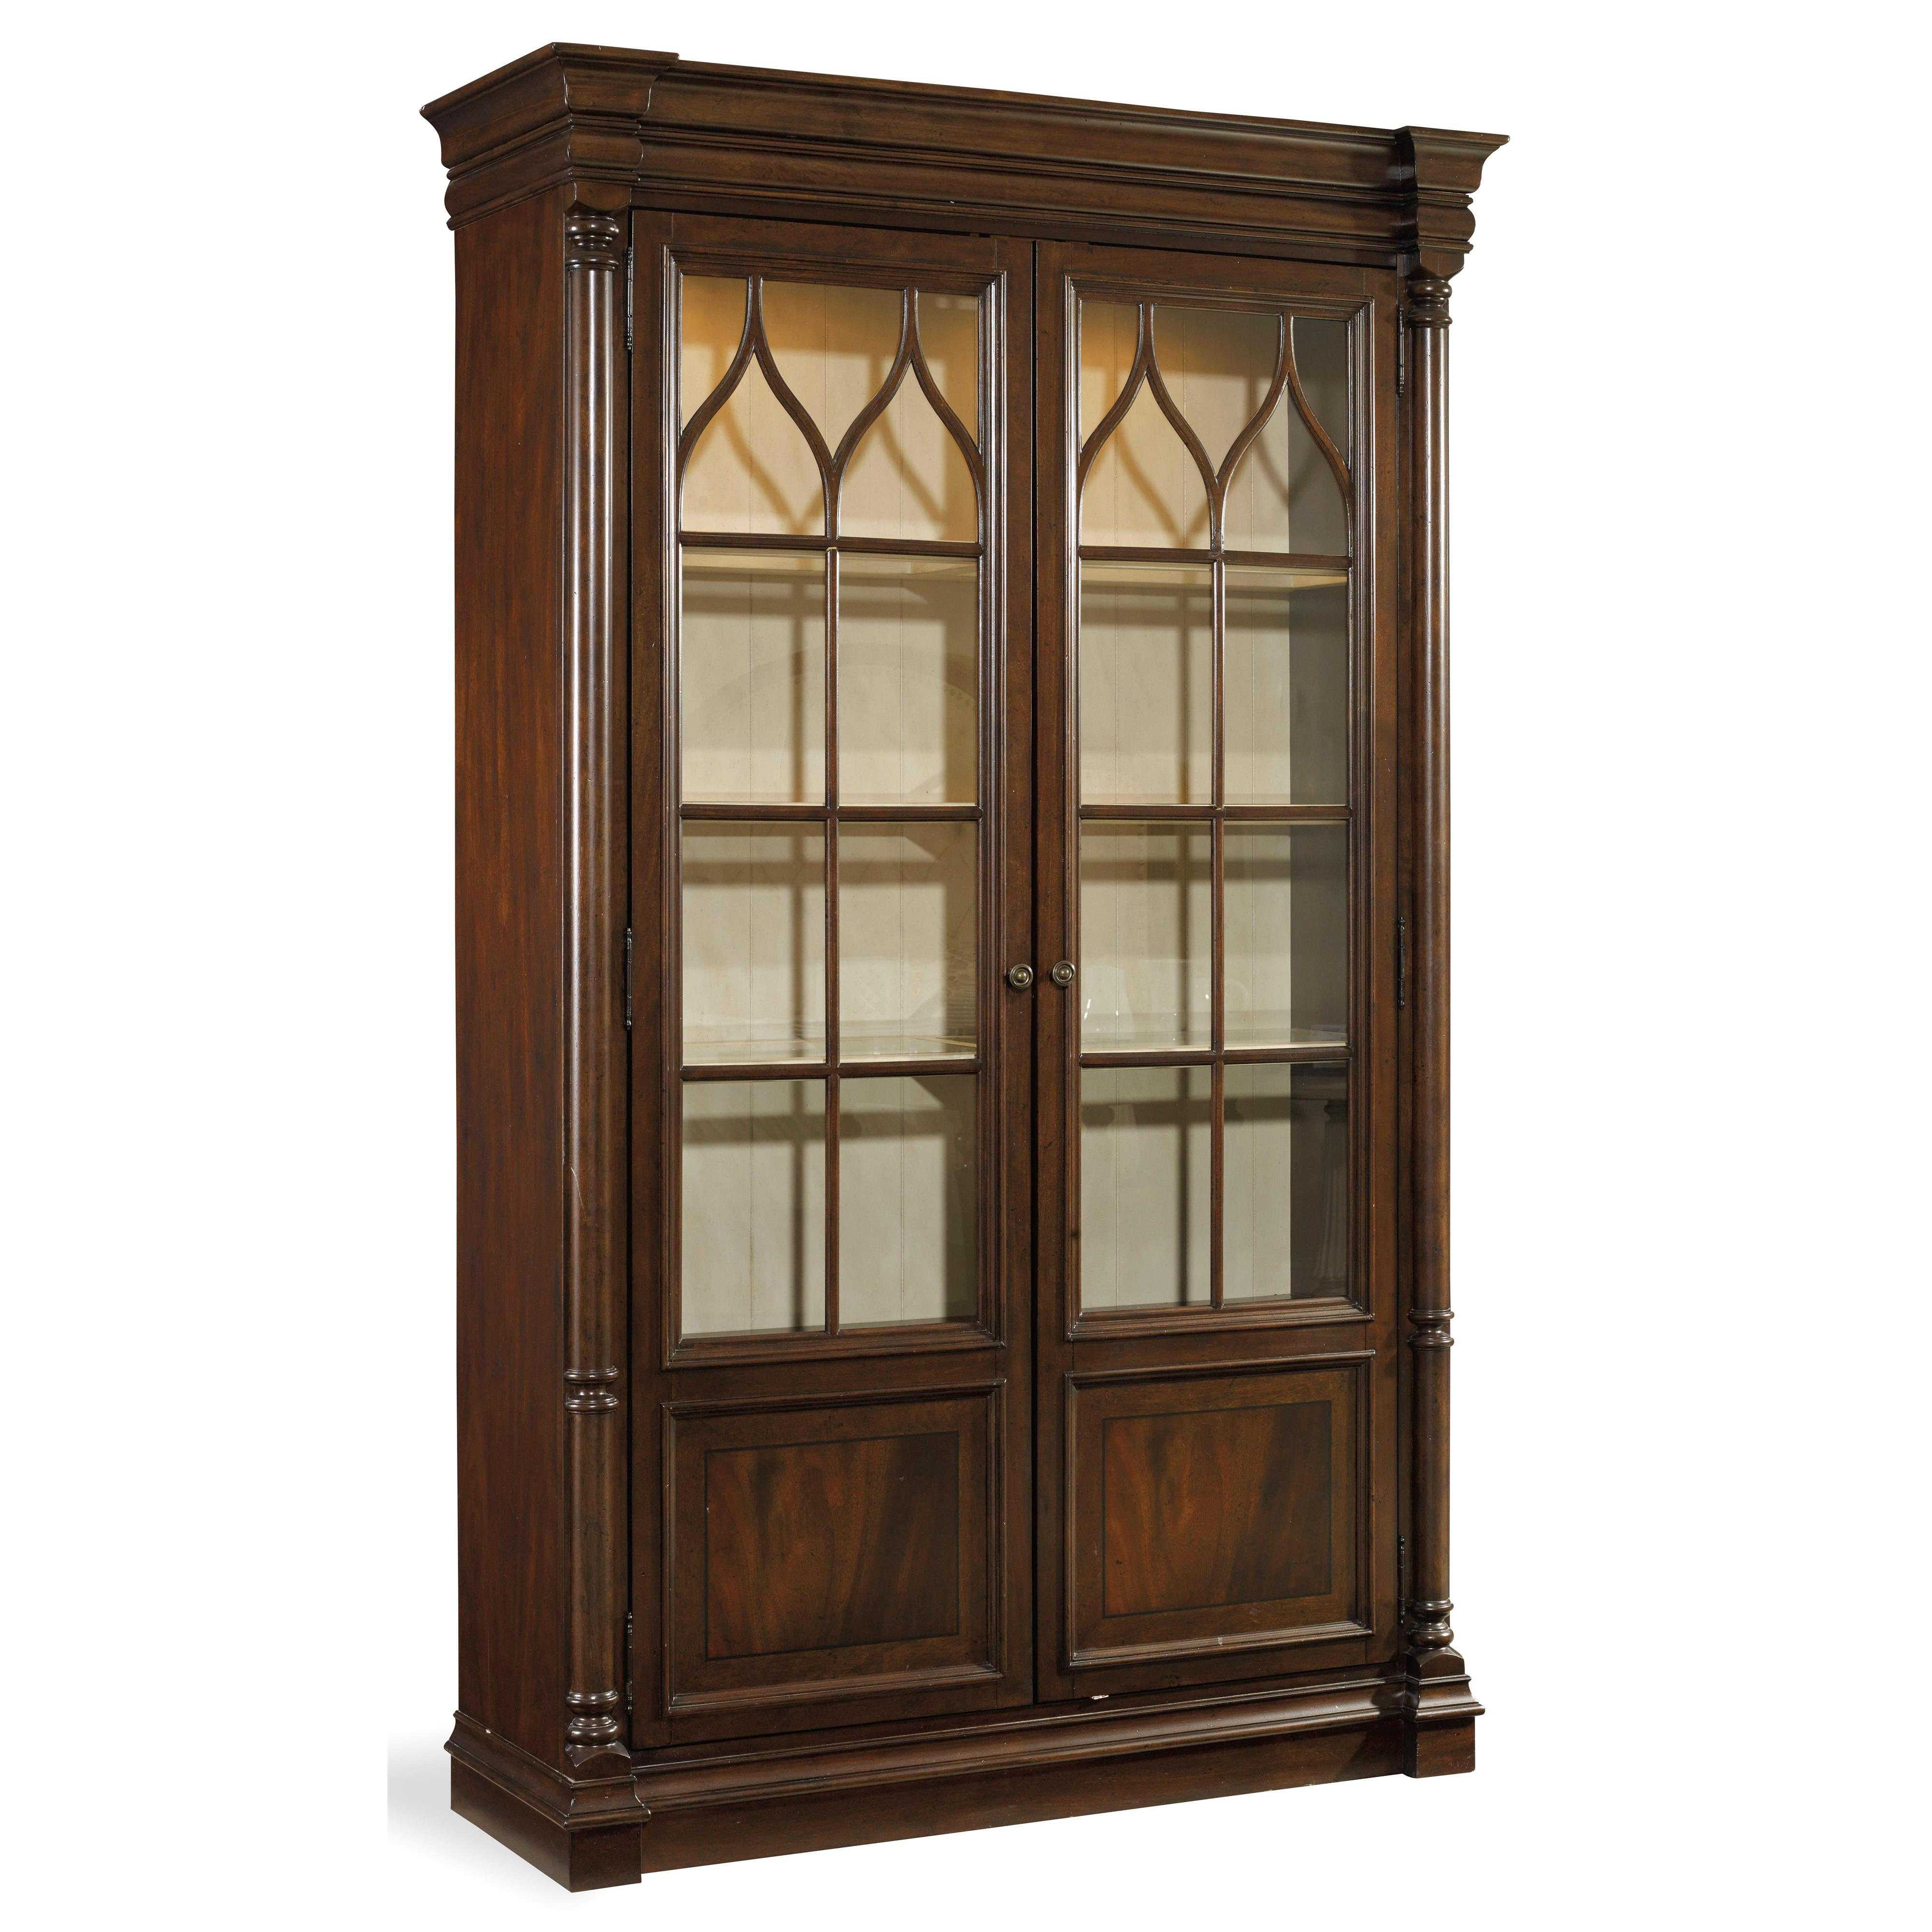 Hooker Furniture Leesburg Display Cabinet - Item Number: 5381-75906